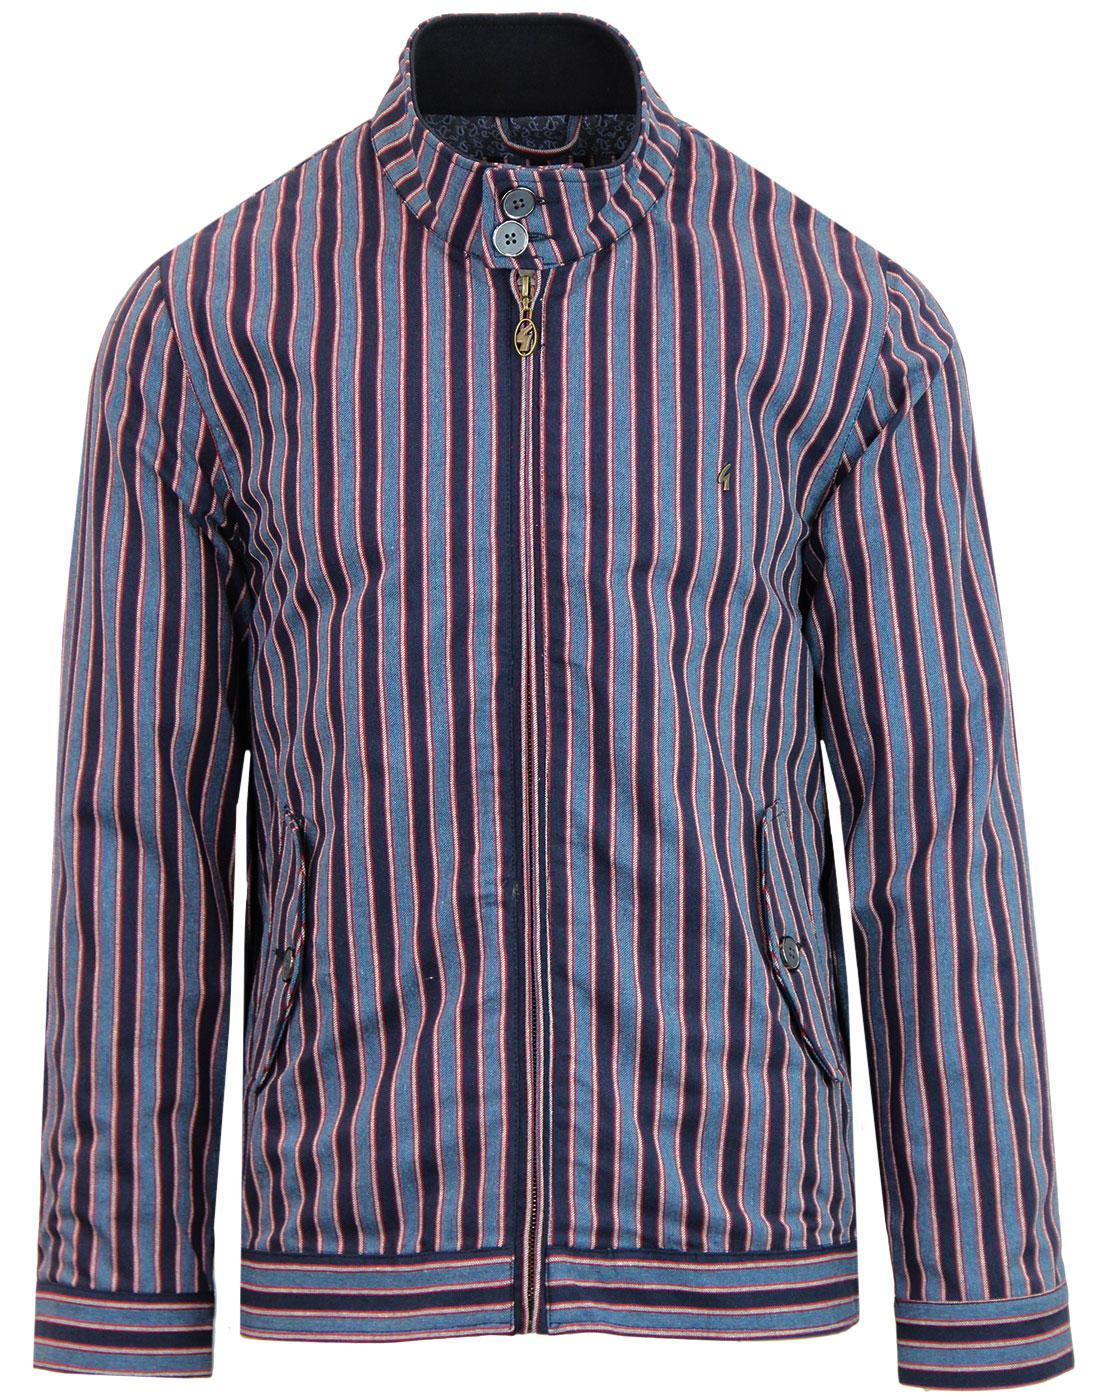 Leon GABICCI VINTAGE Mod Boating Stripe Harrington